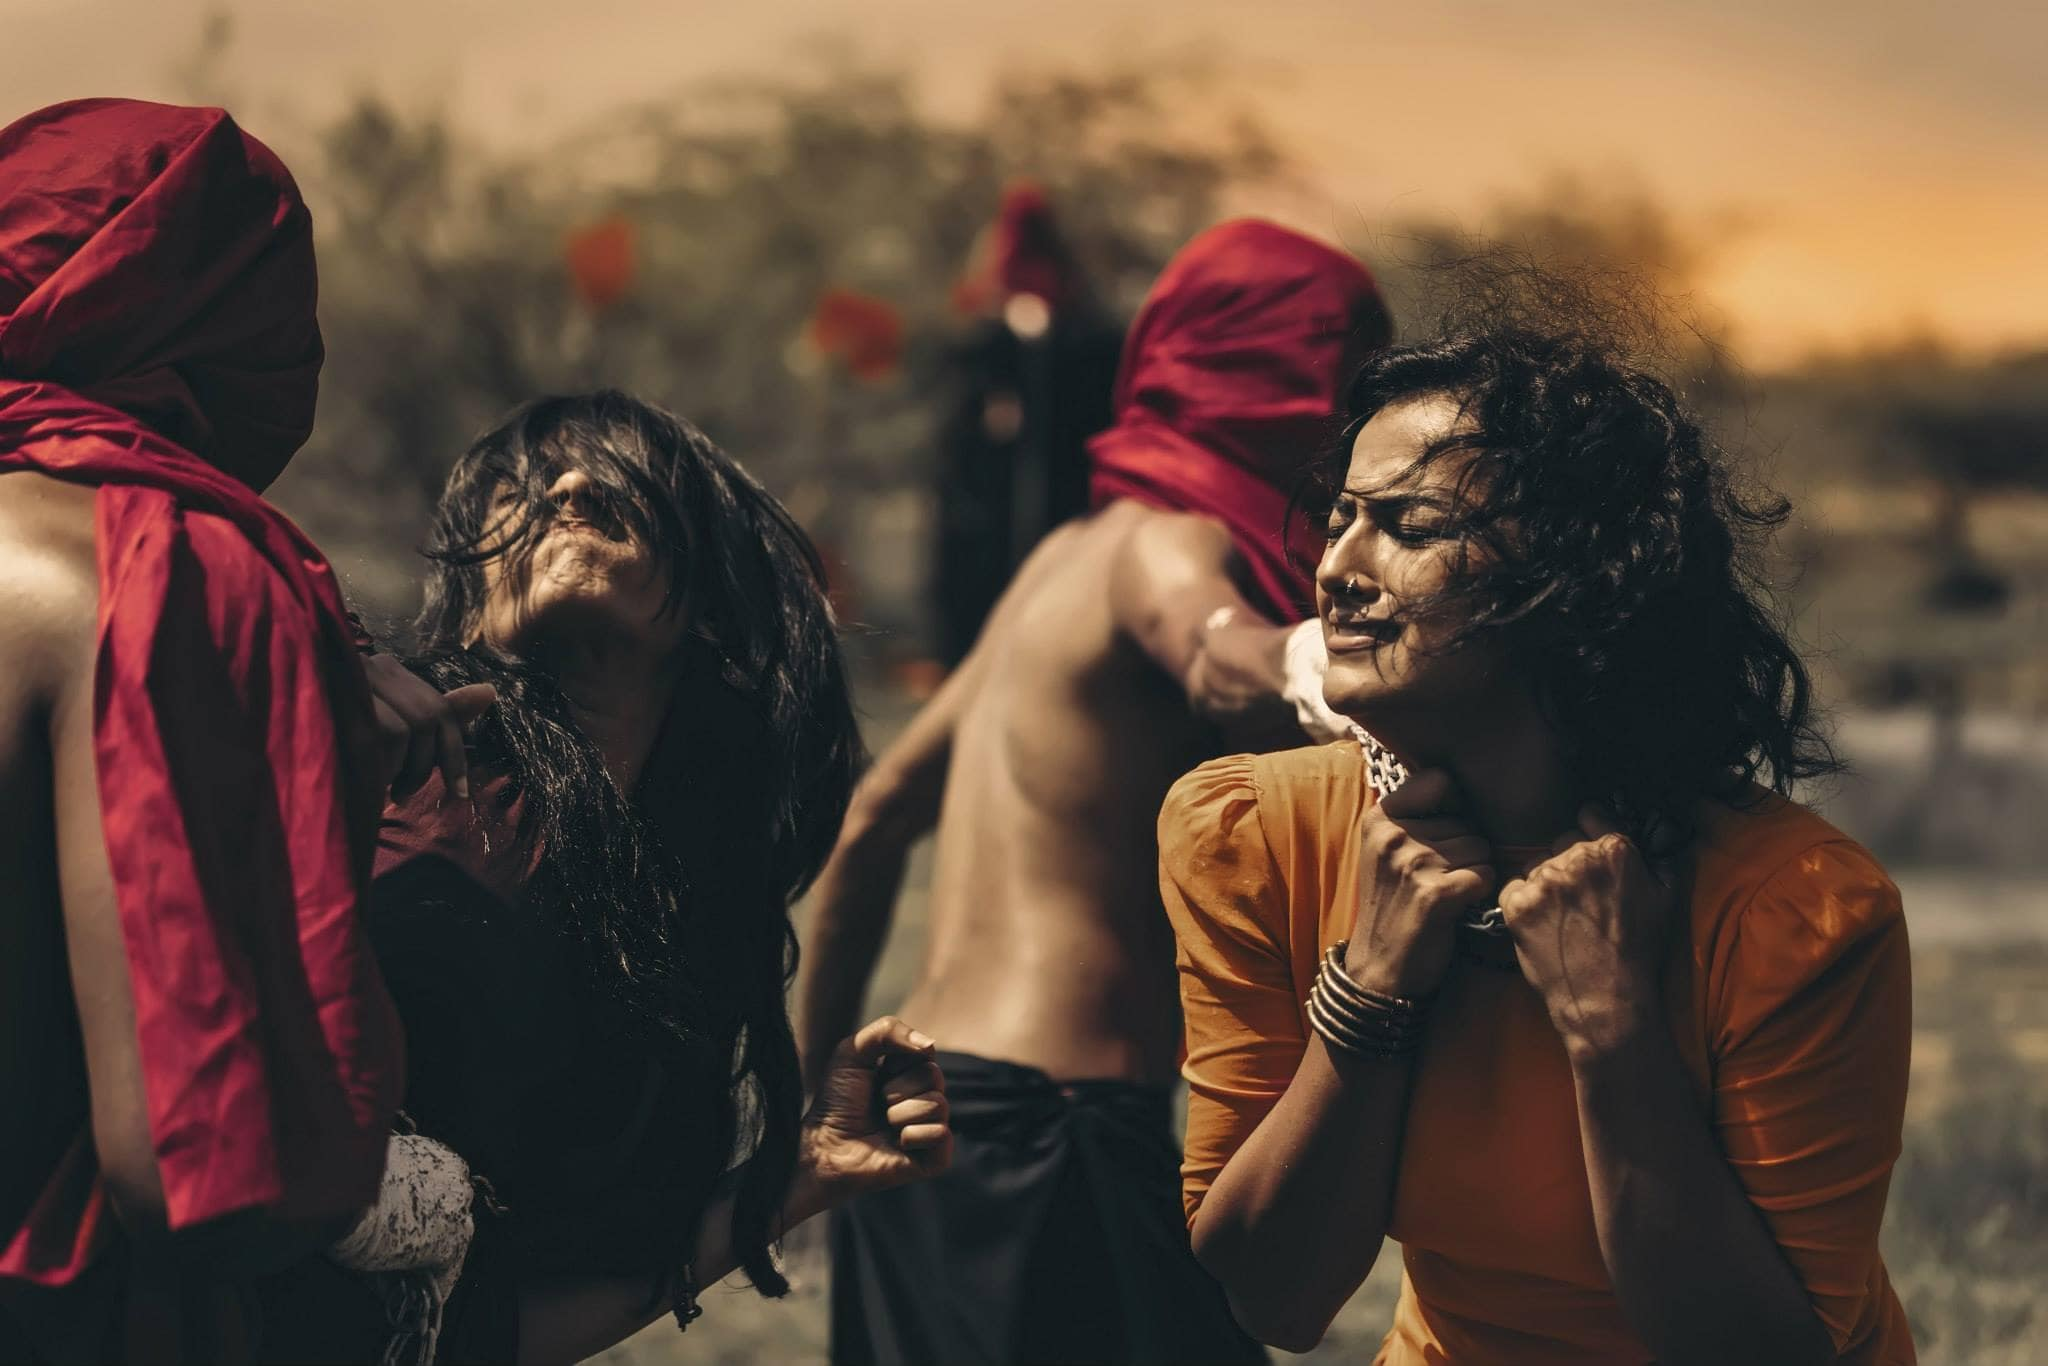 A powerful photo story, Coming out by Arjun Kamath-25